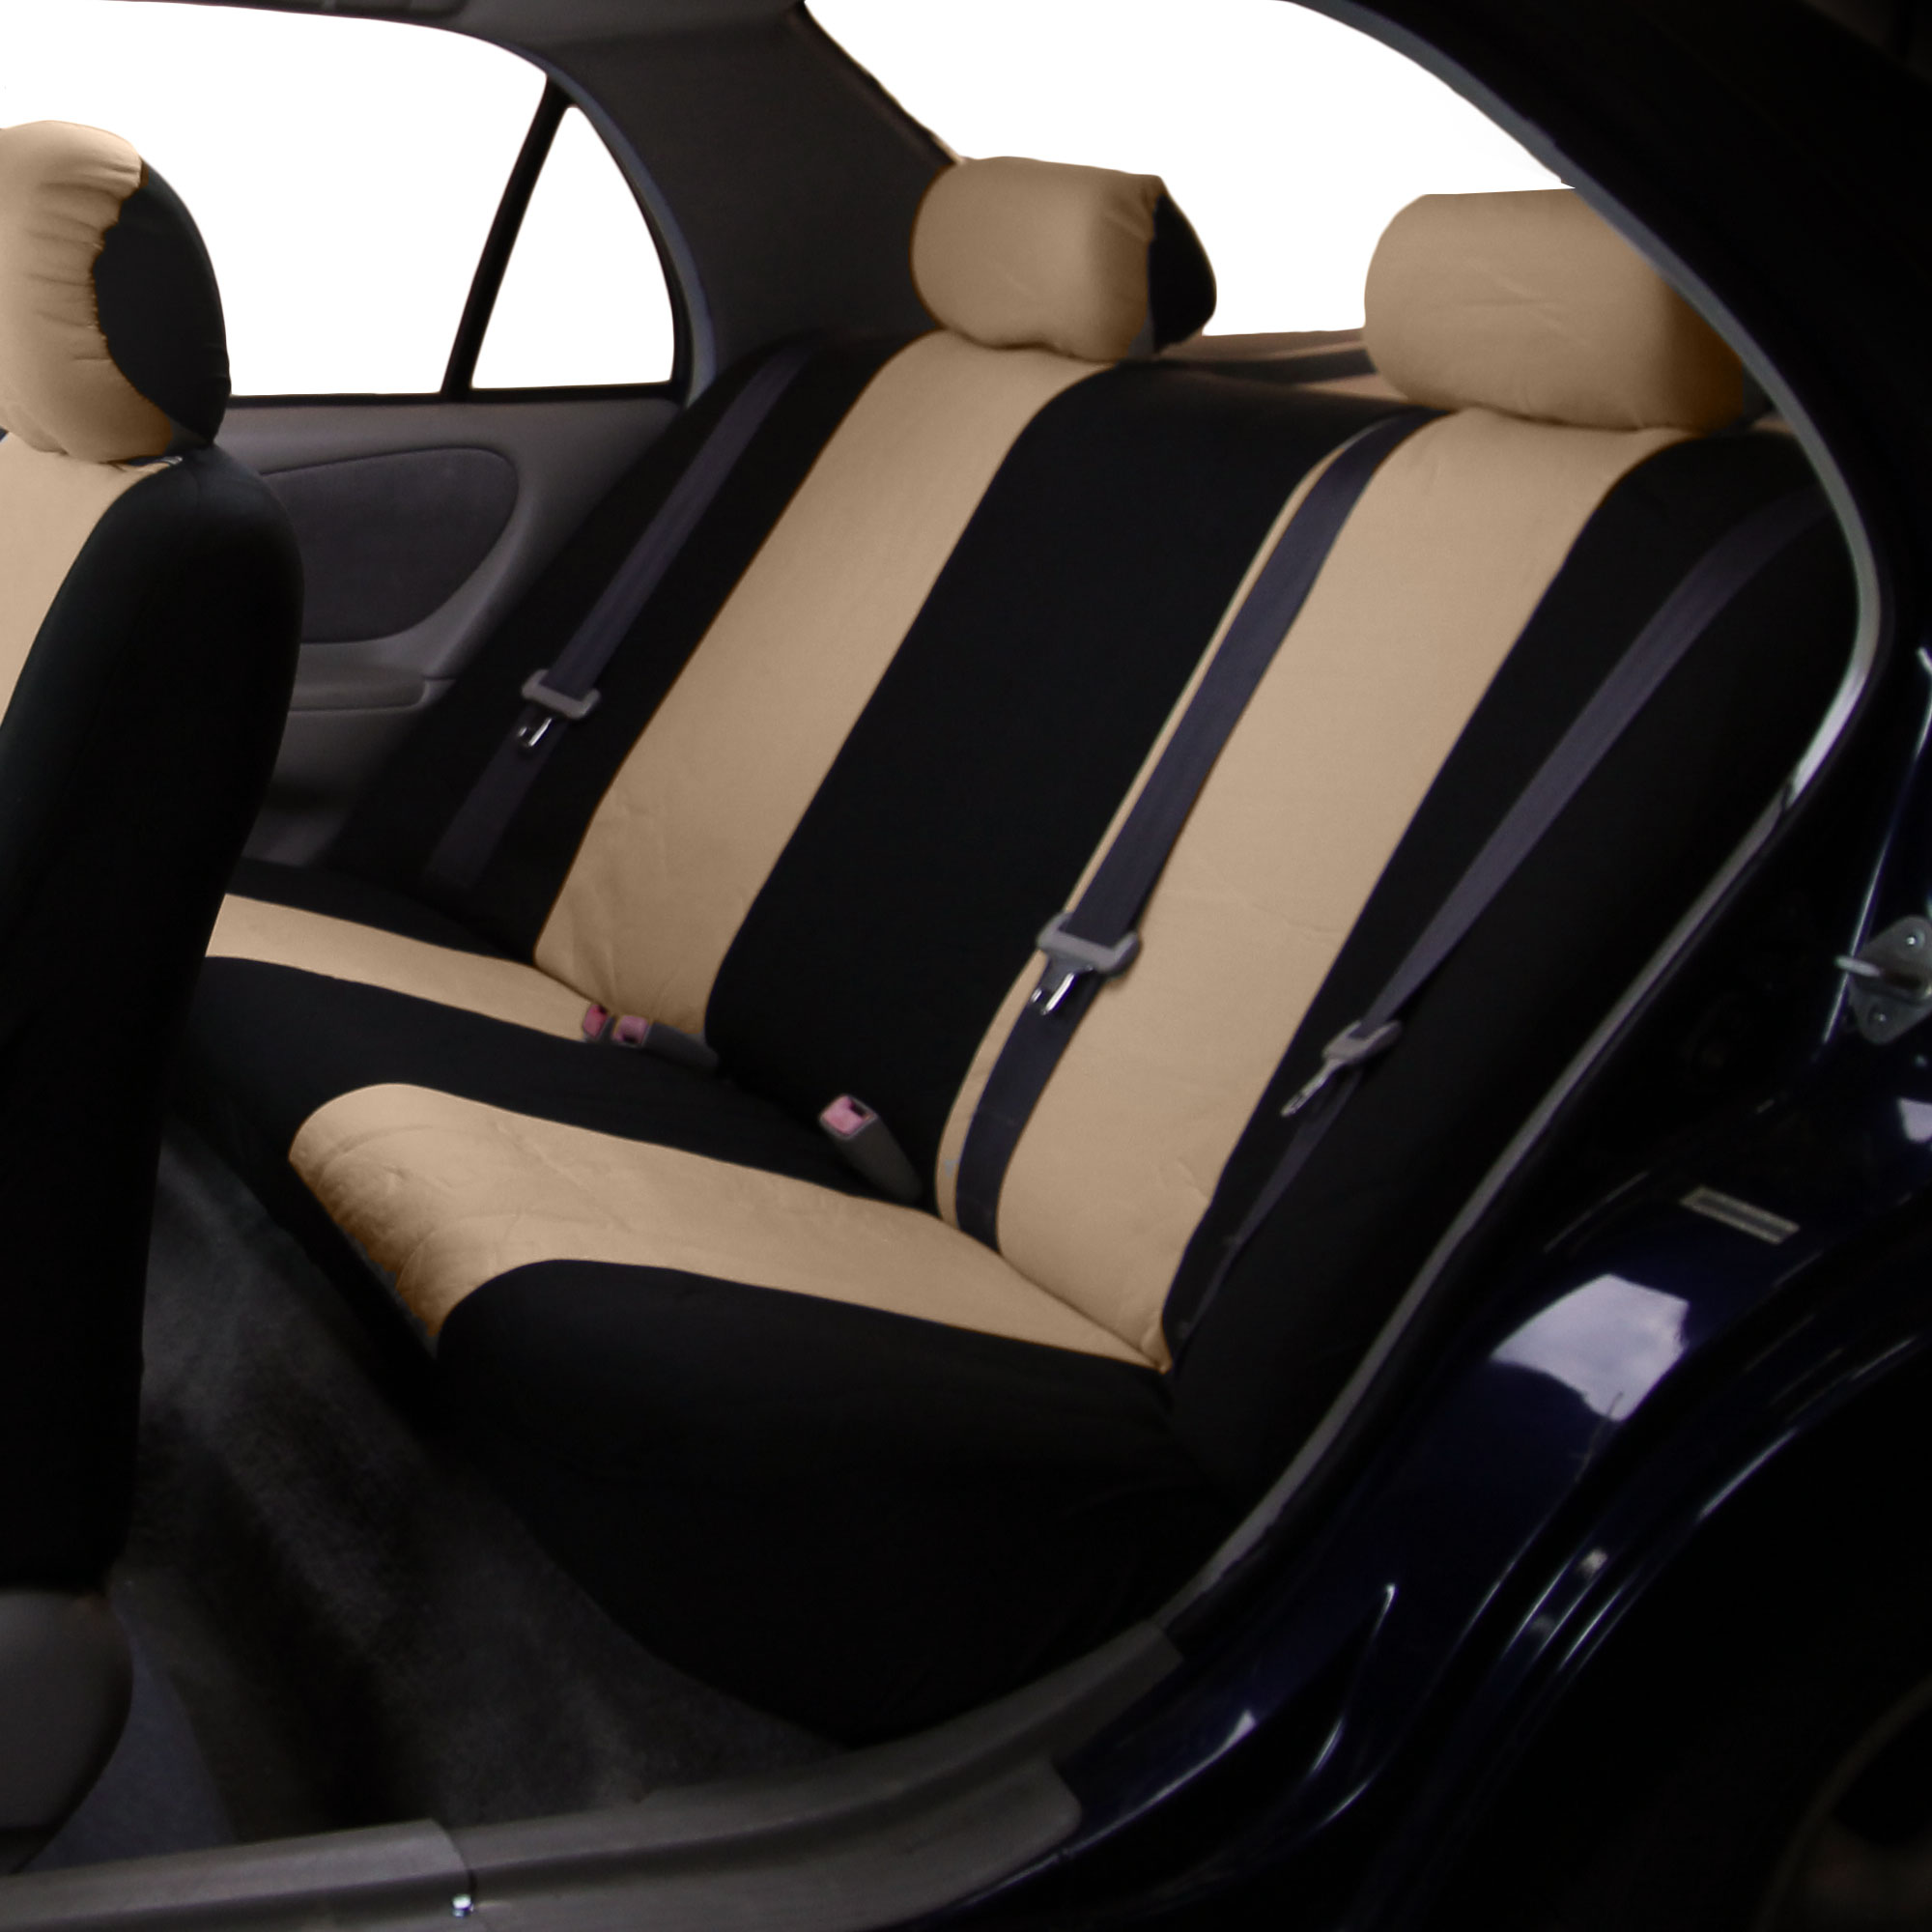 car seat covers for rear seat luxury sporty for car suv minivan ebay. Black Bedroom Furniture Sets. Home Design Ideas